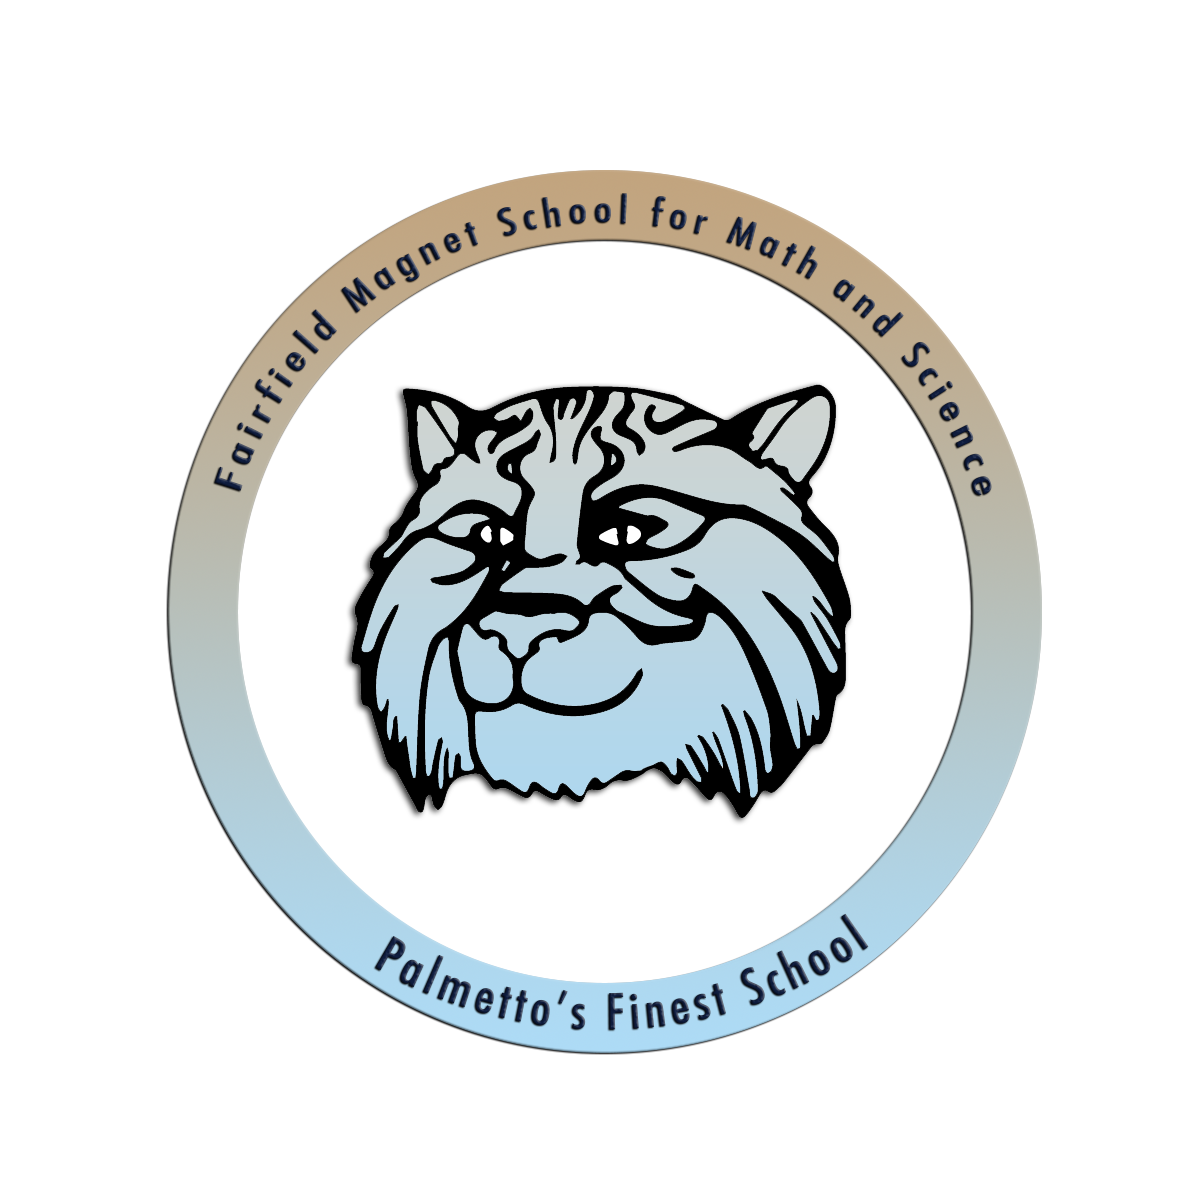 Fairfield Magnet School for Math & Science Logo